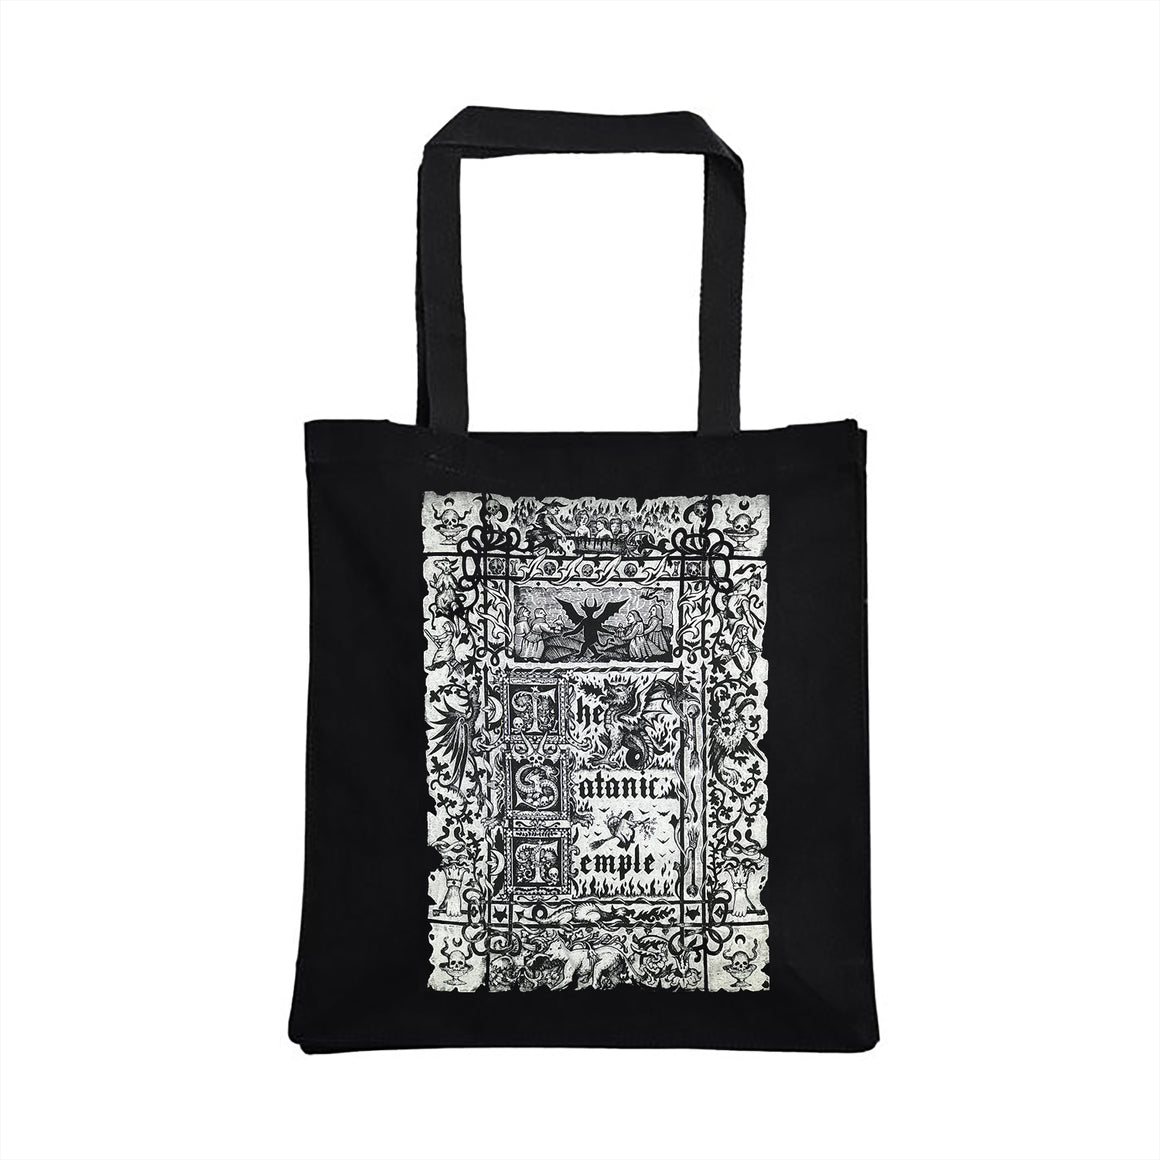 Illuminated Tote Bag design by Luciana Nedelea